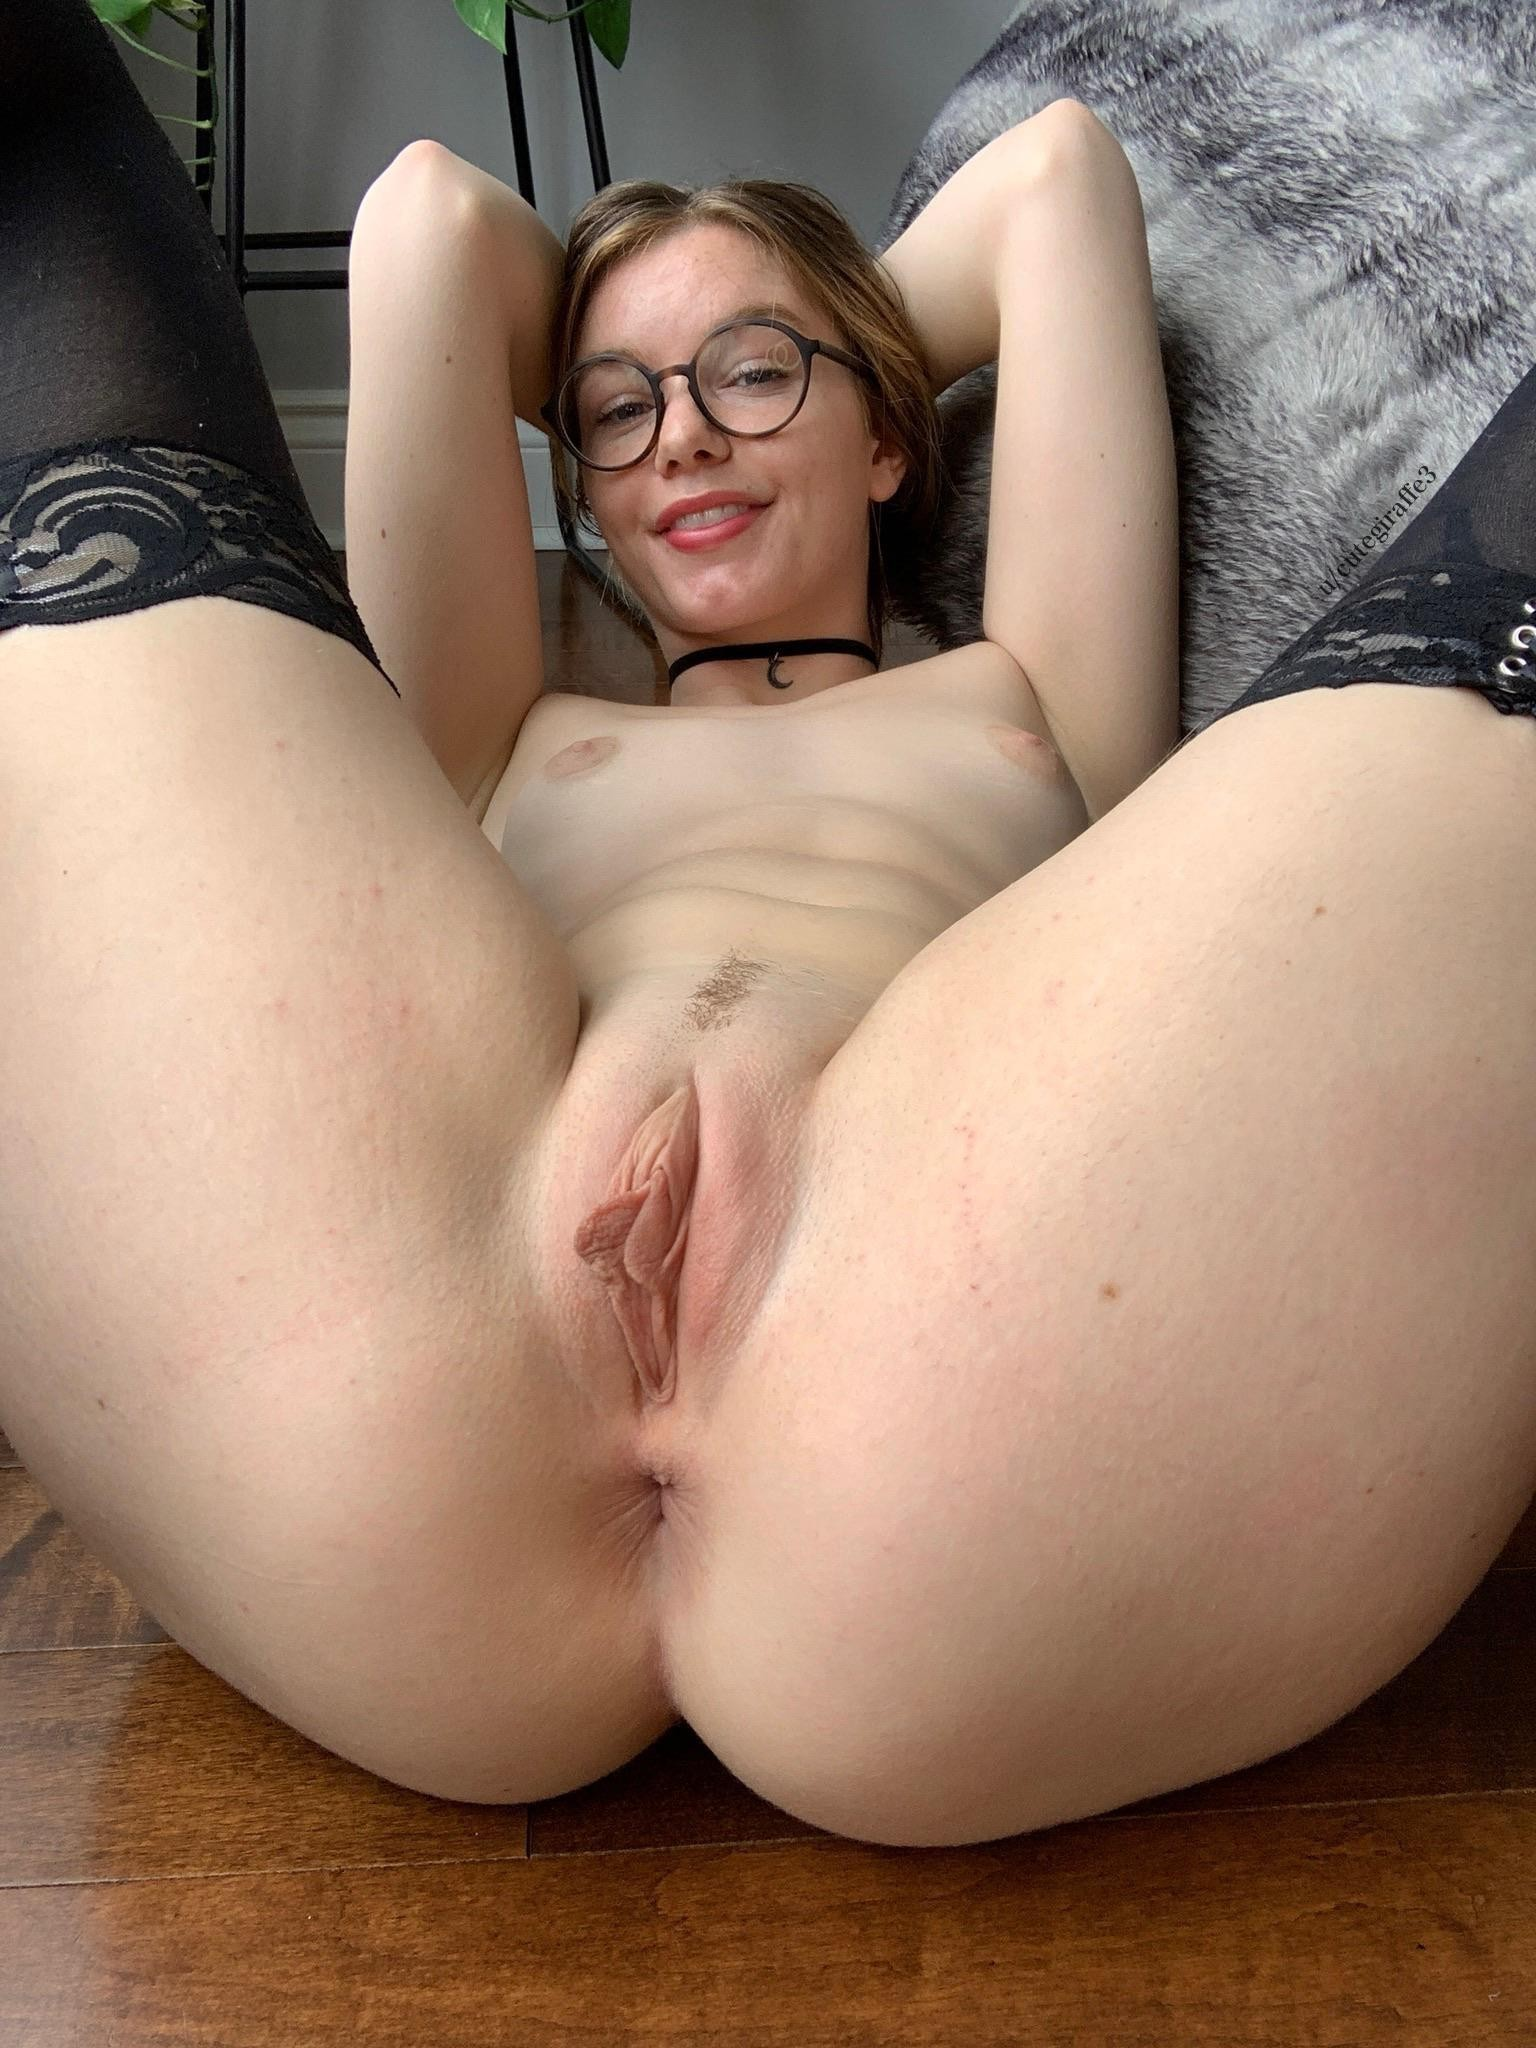 femdom captions chastity cuckold and strap on captions